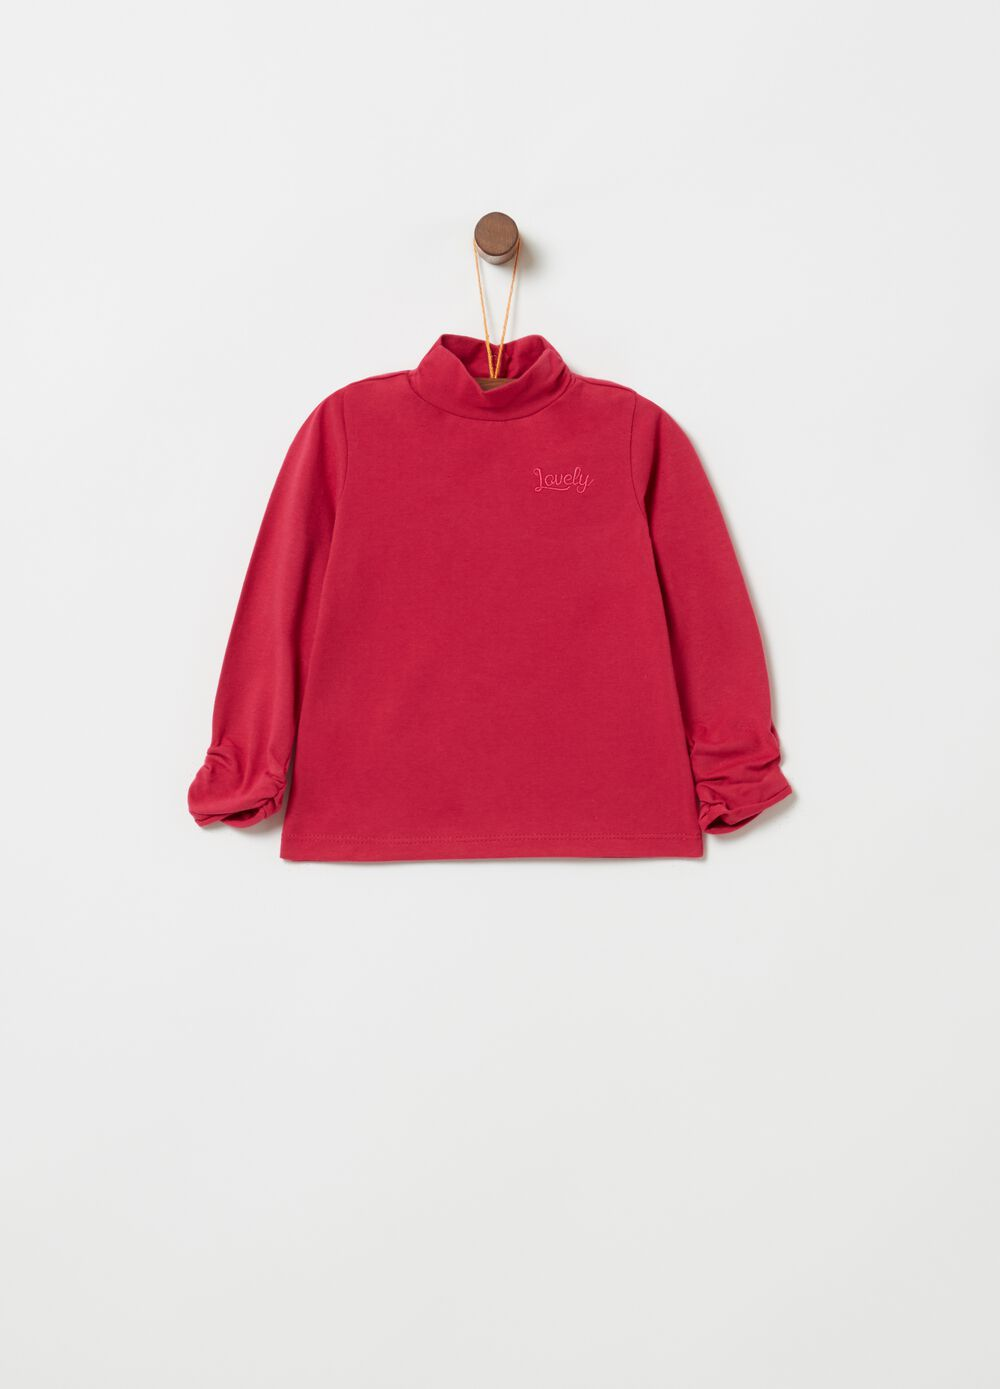 Long-sleeved T-shirt with high neck and embroidery